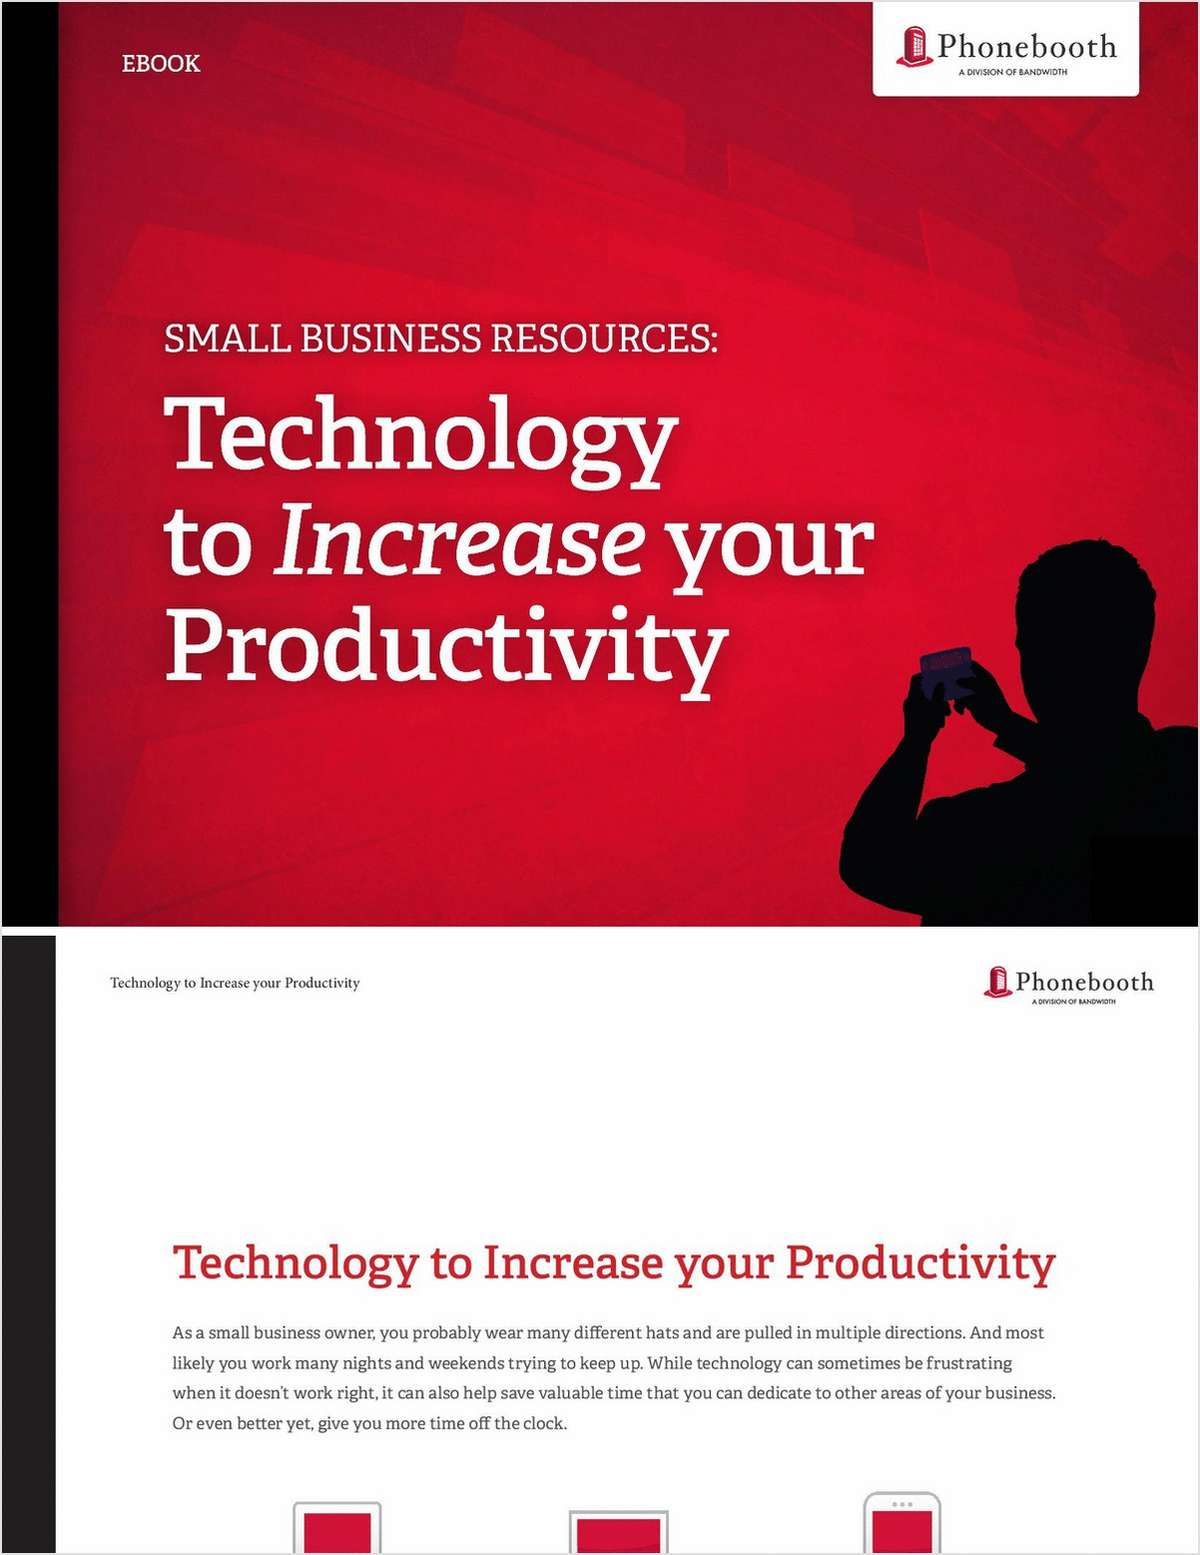 Using Technology to Increase Small Business Productivity